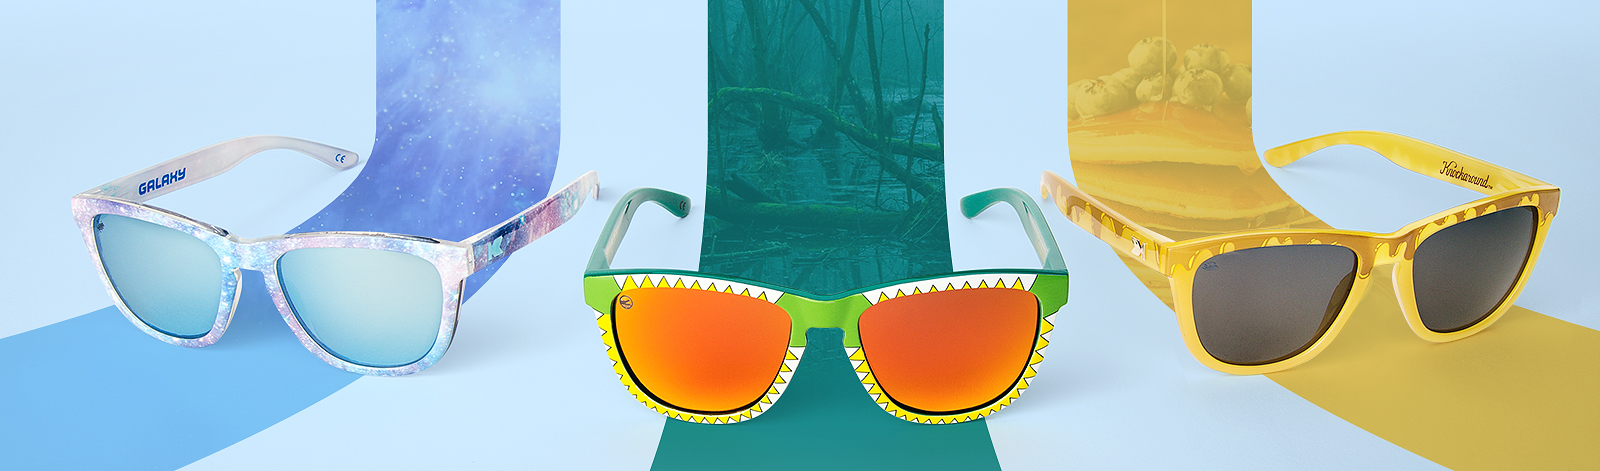 e6001259db Knockaround Releases Sunglasses Designed by Elementary Students To ...